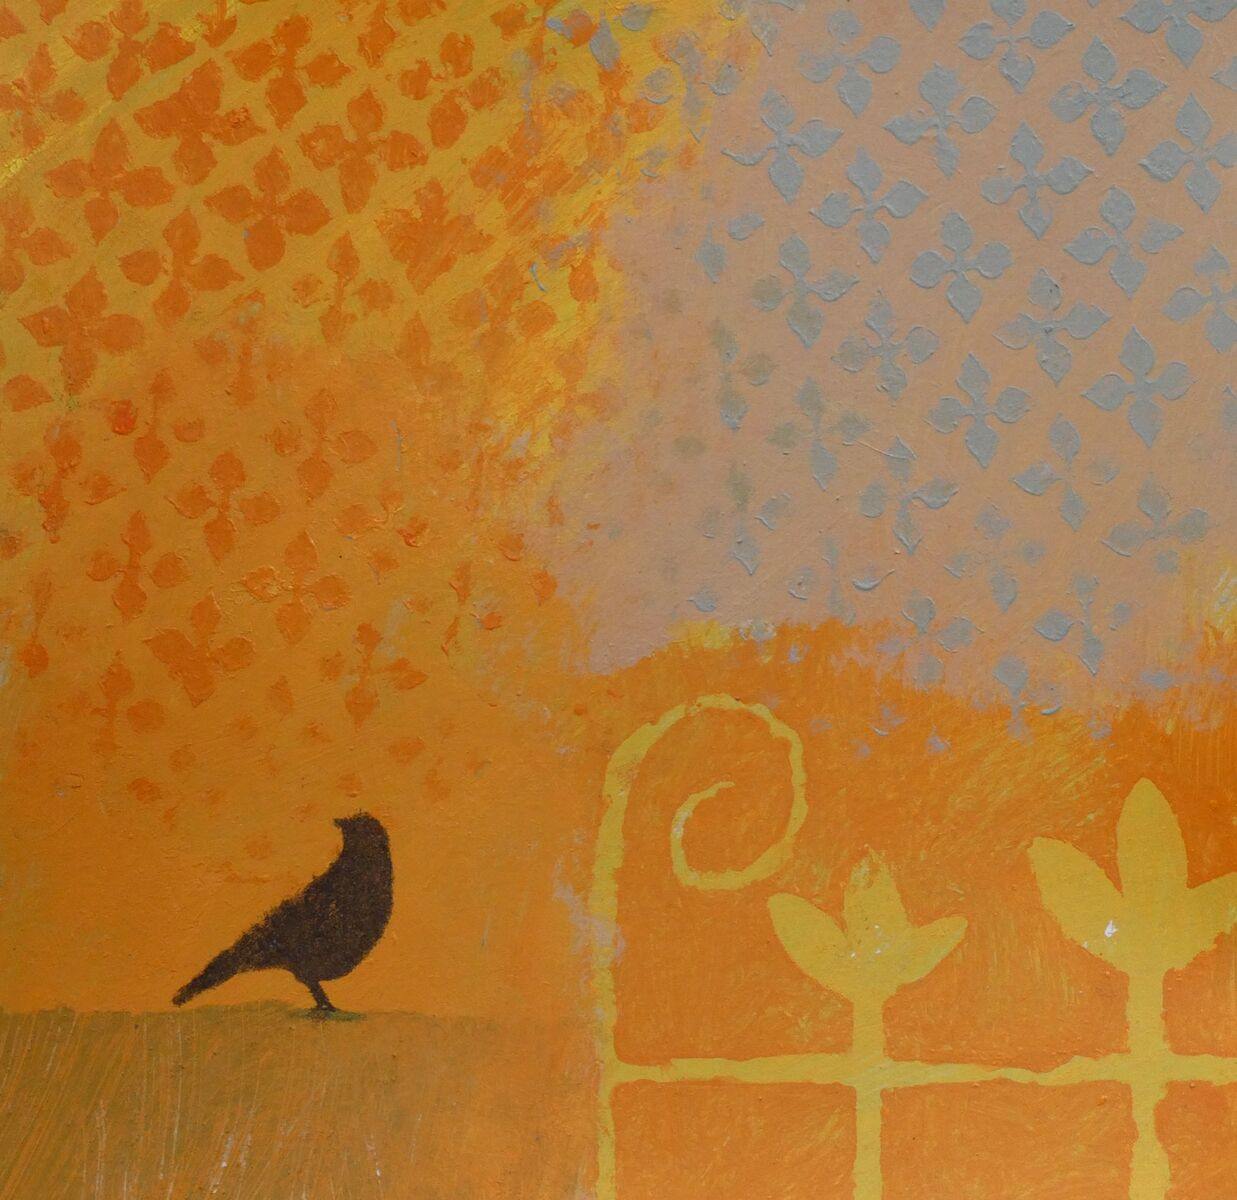 Crow, gate and curtain